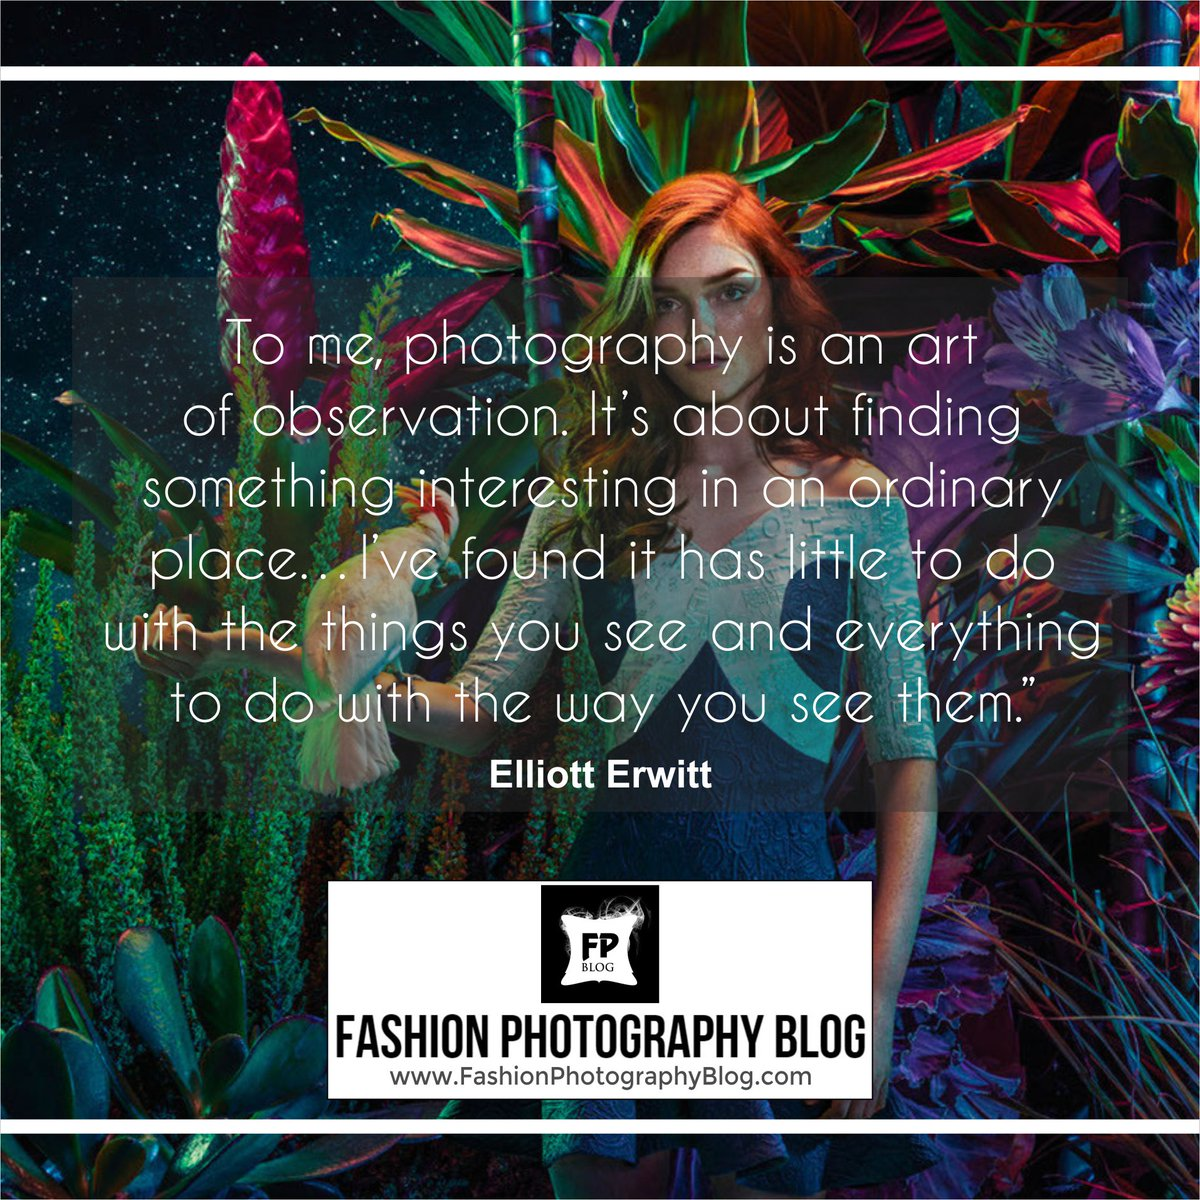 """""""#Photography is an art of observation"""". For more #photographyinspiration visit https://t.co/6VRubwJmTn Please RT https://t.co/U8rihuTGrn"""